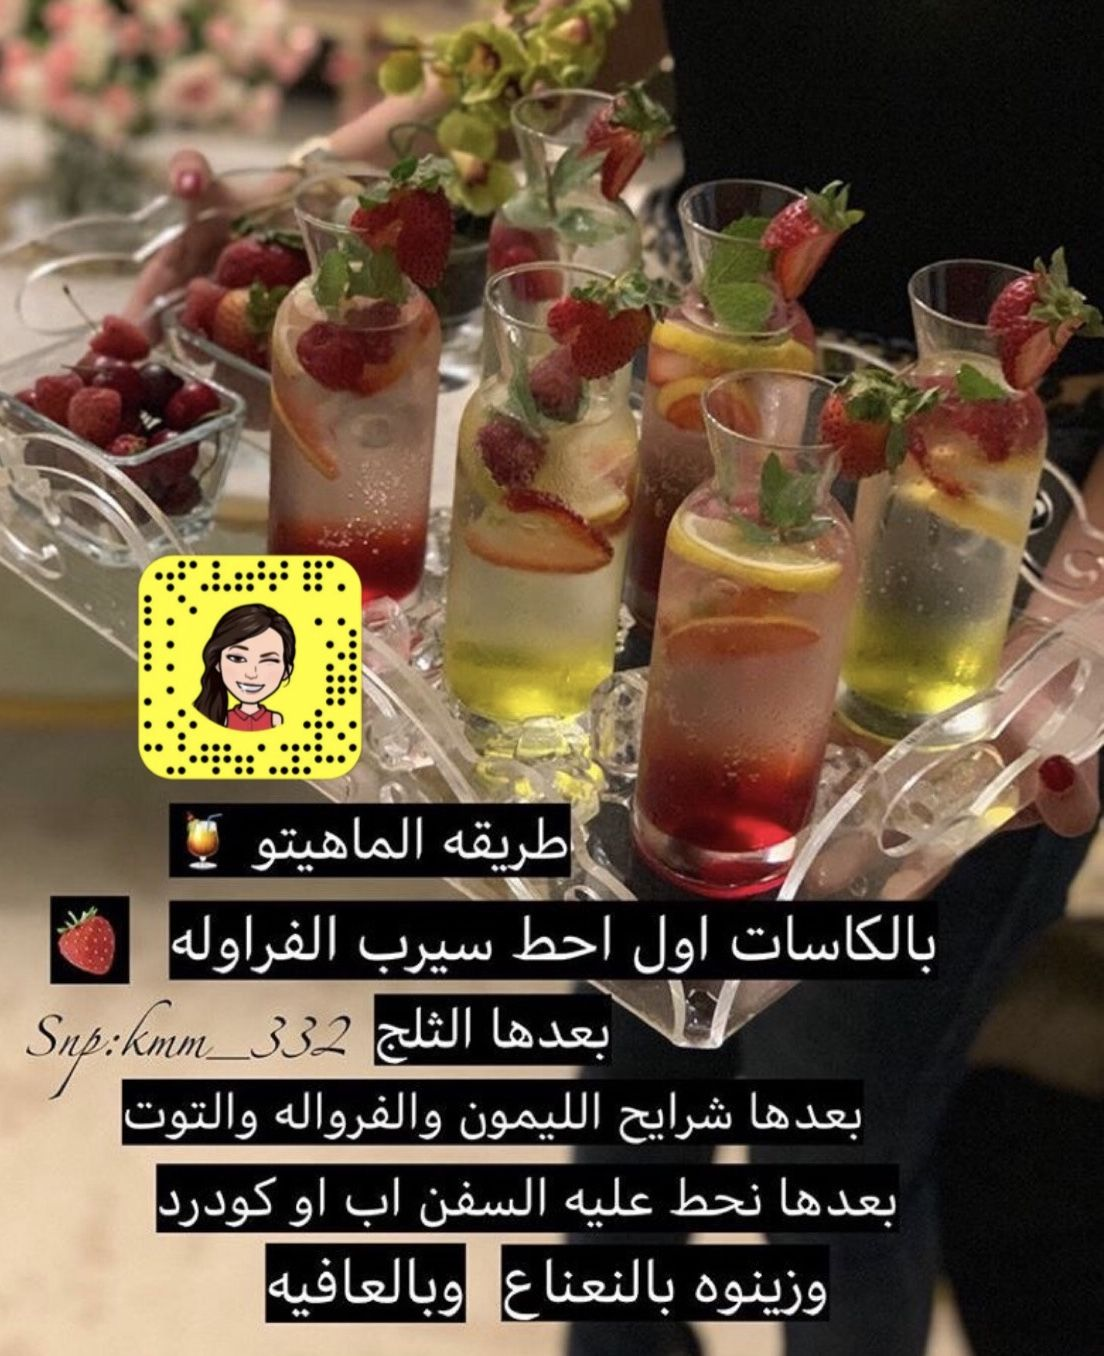 Pin By Alanoud On Food Cafe Food Healthy Juice Recipes Yummy Food Dessert